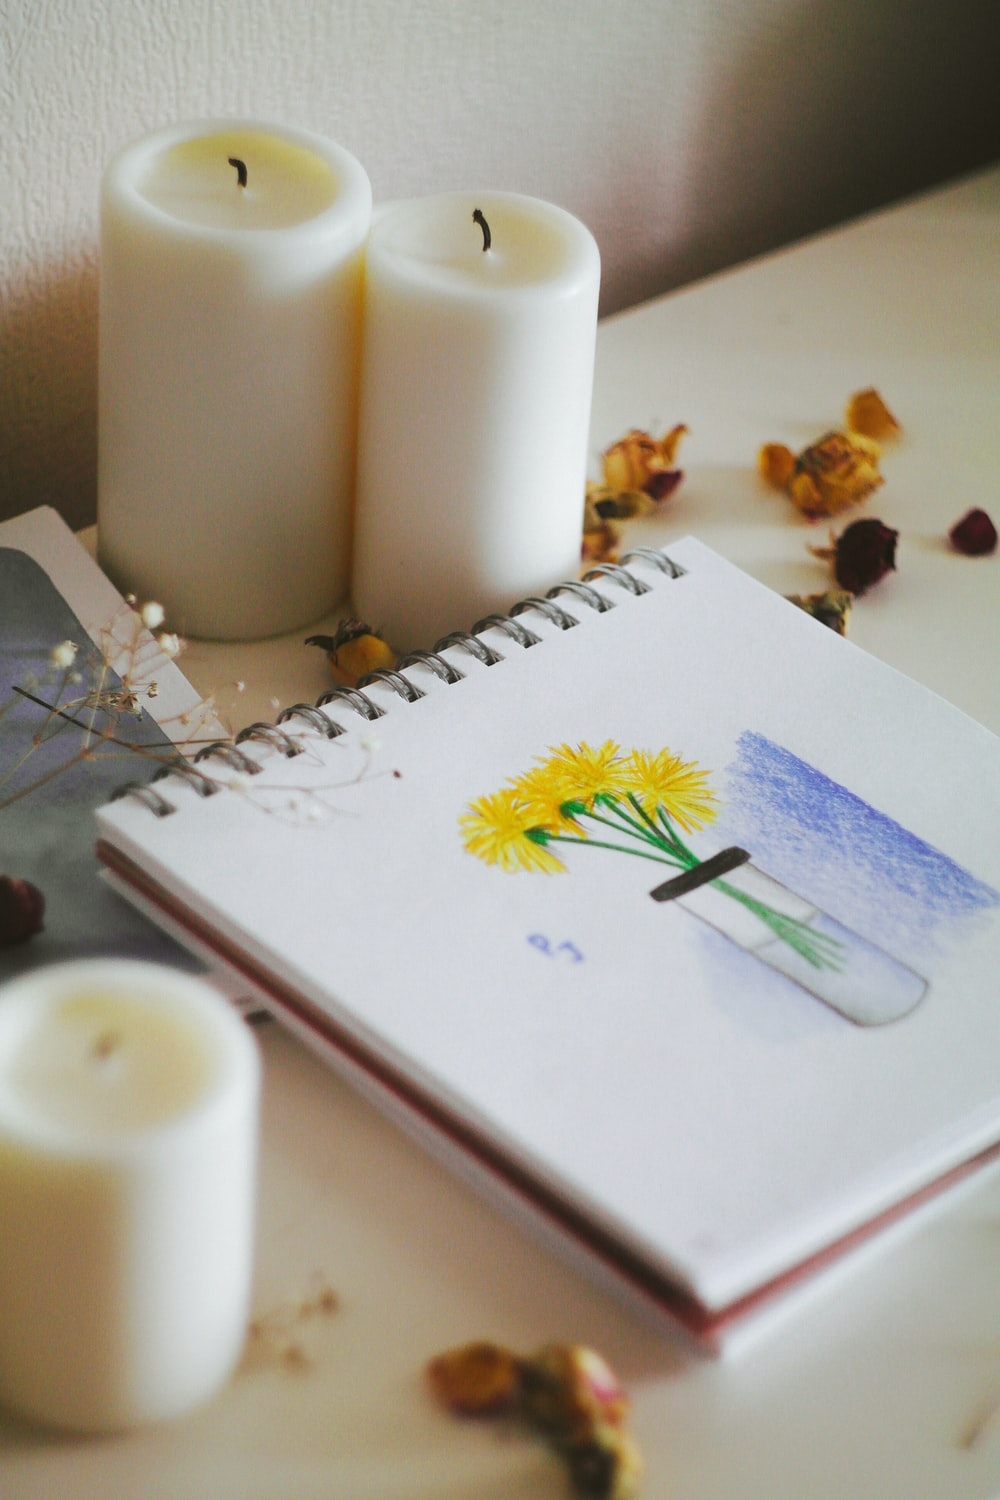 white paper with yellow and green flower drawing